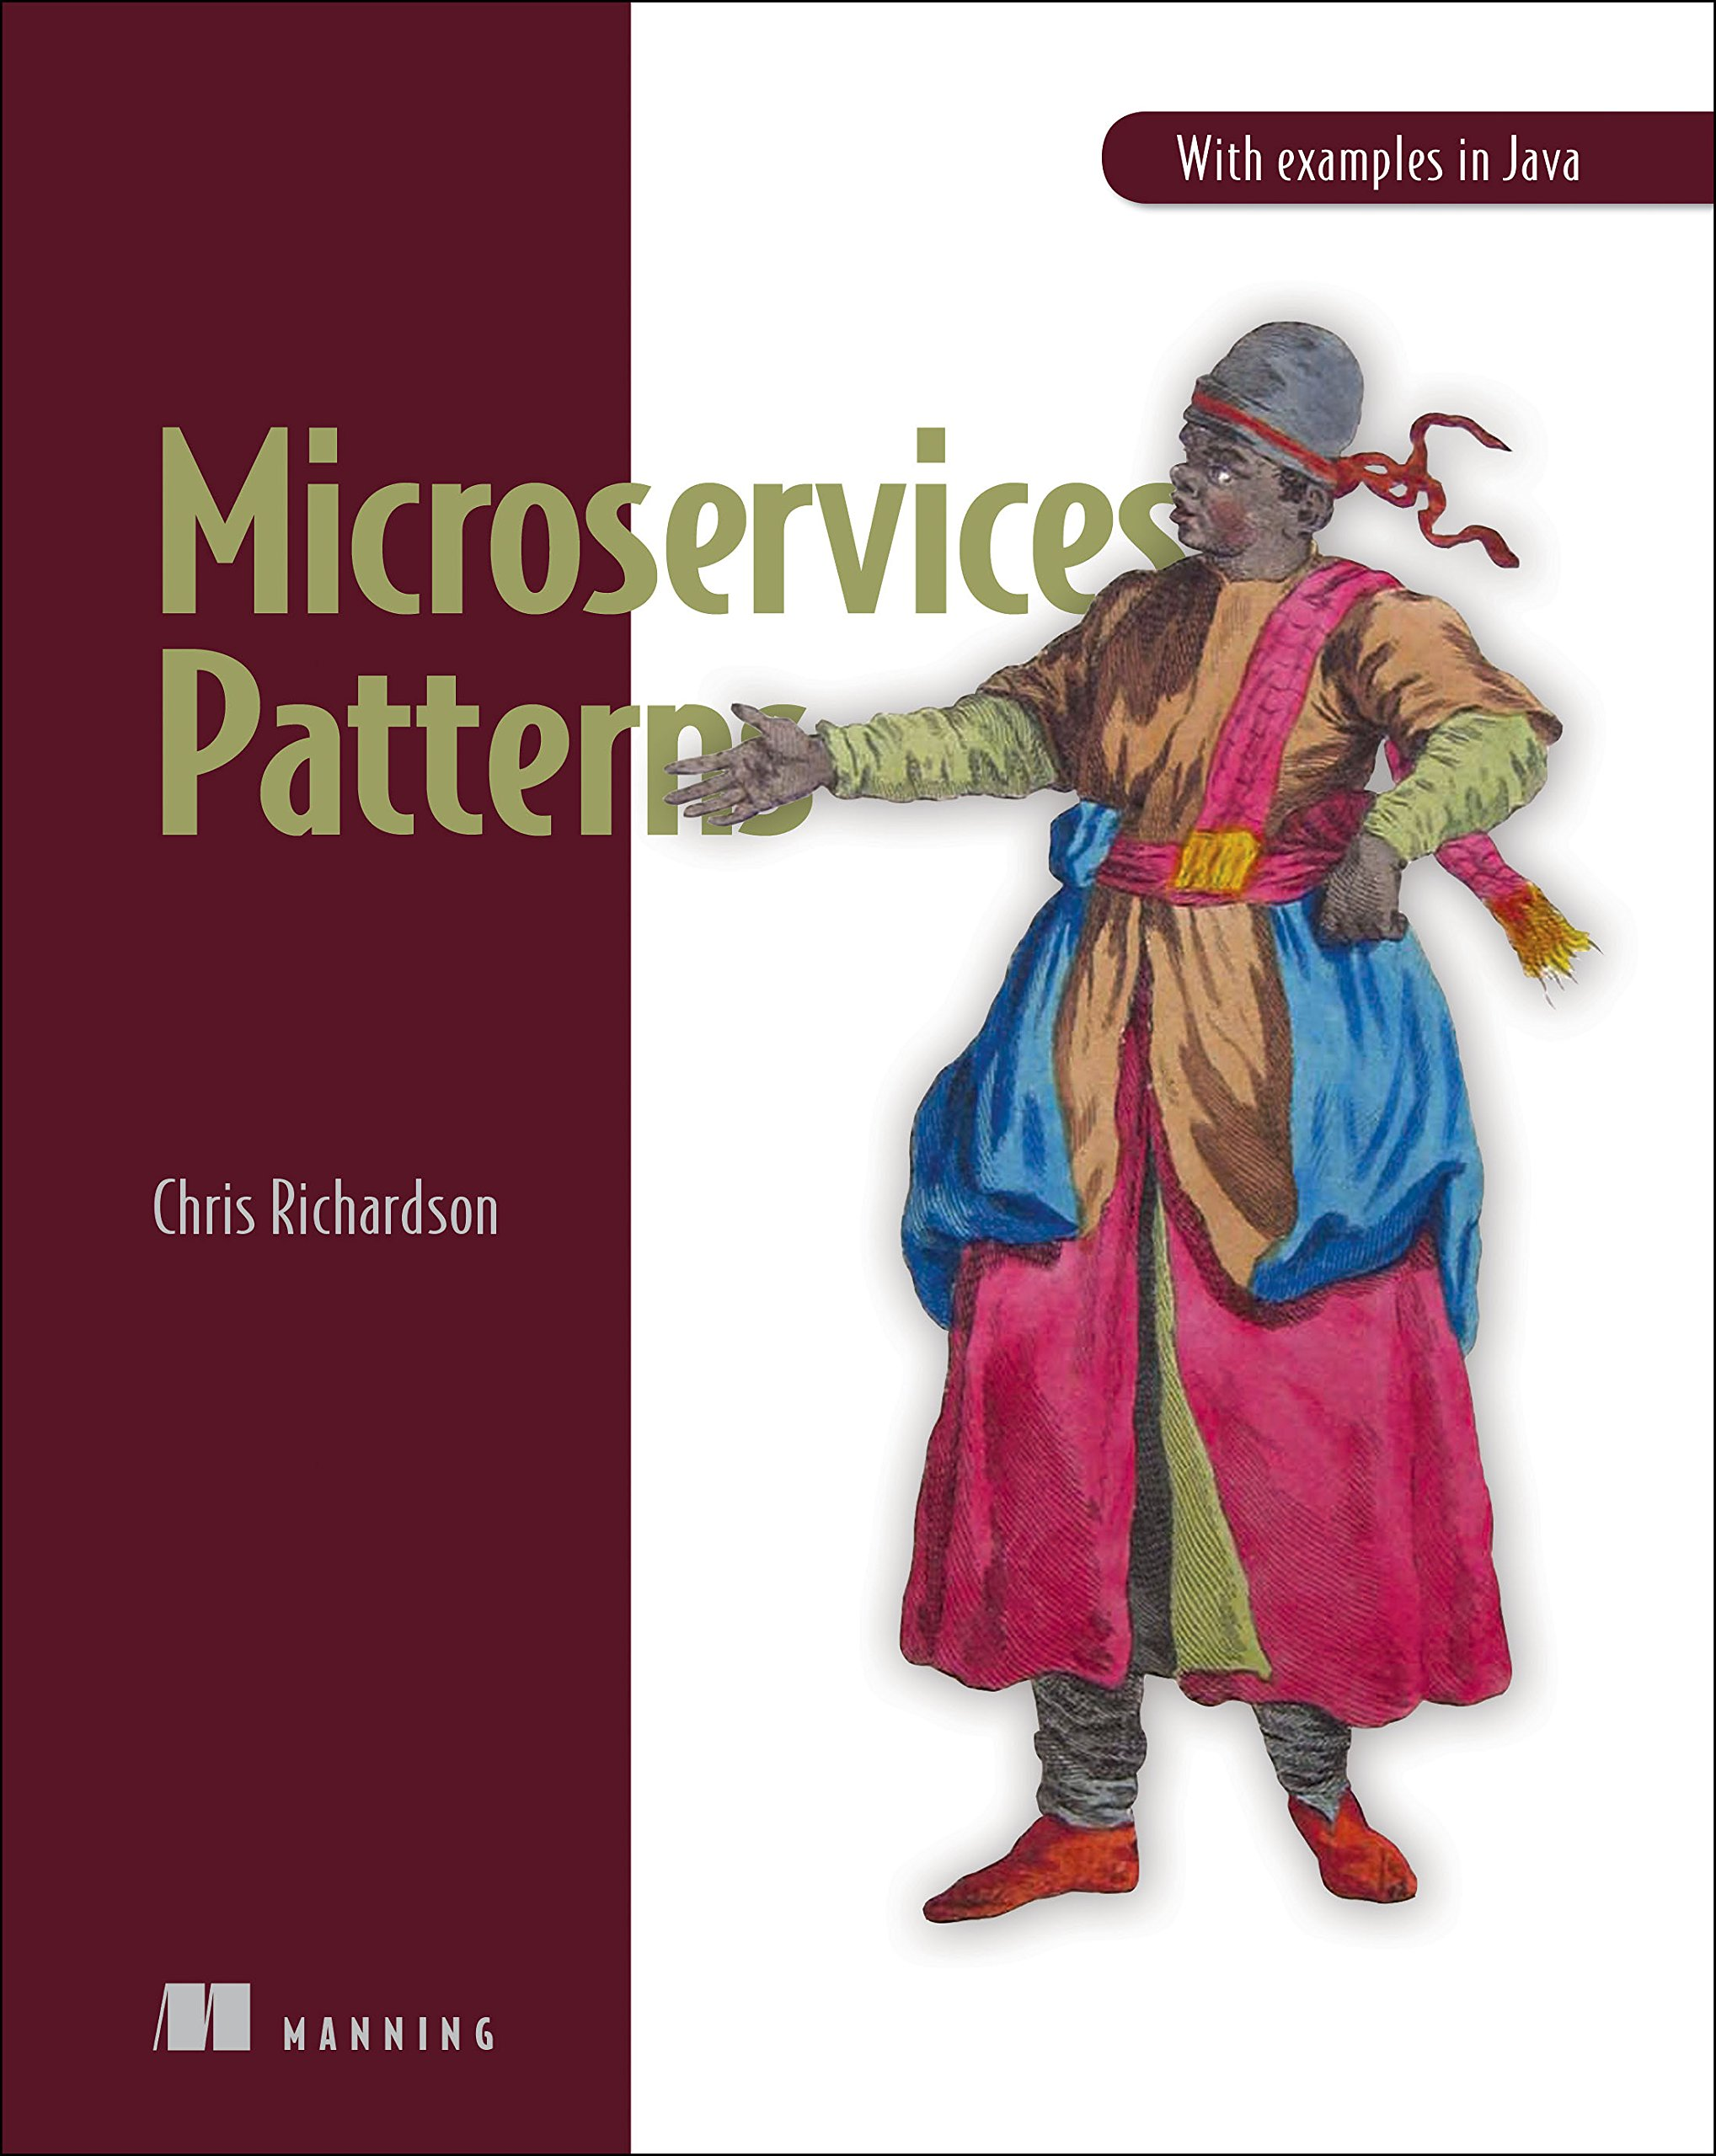 Microservices Patterns: With examples in Java by Manning Publications